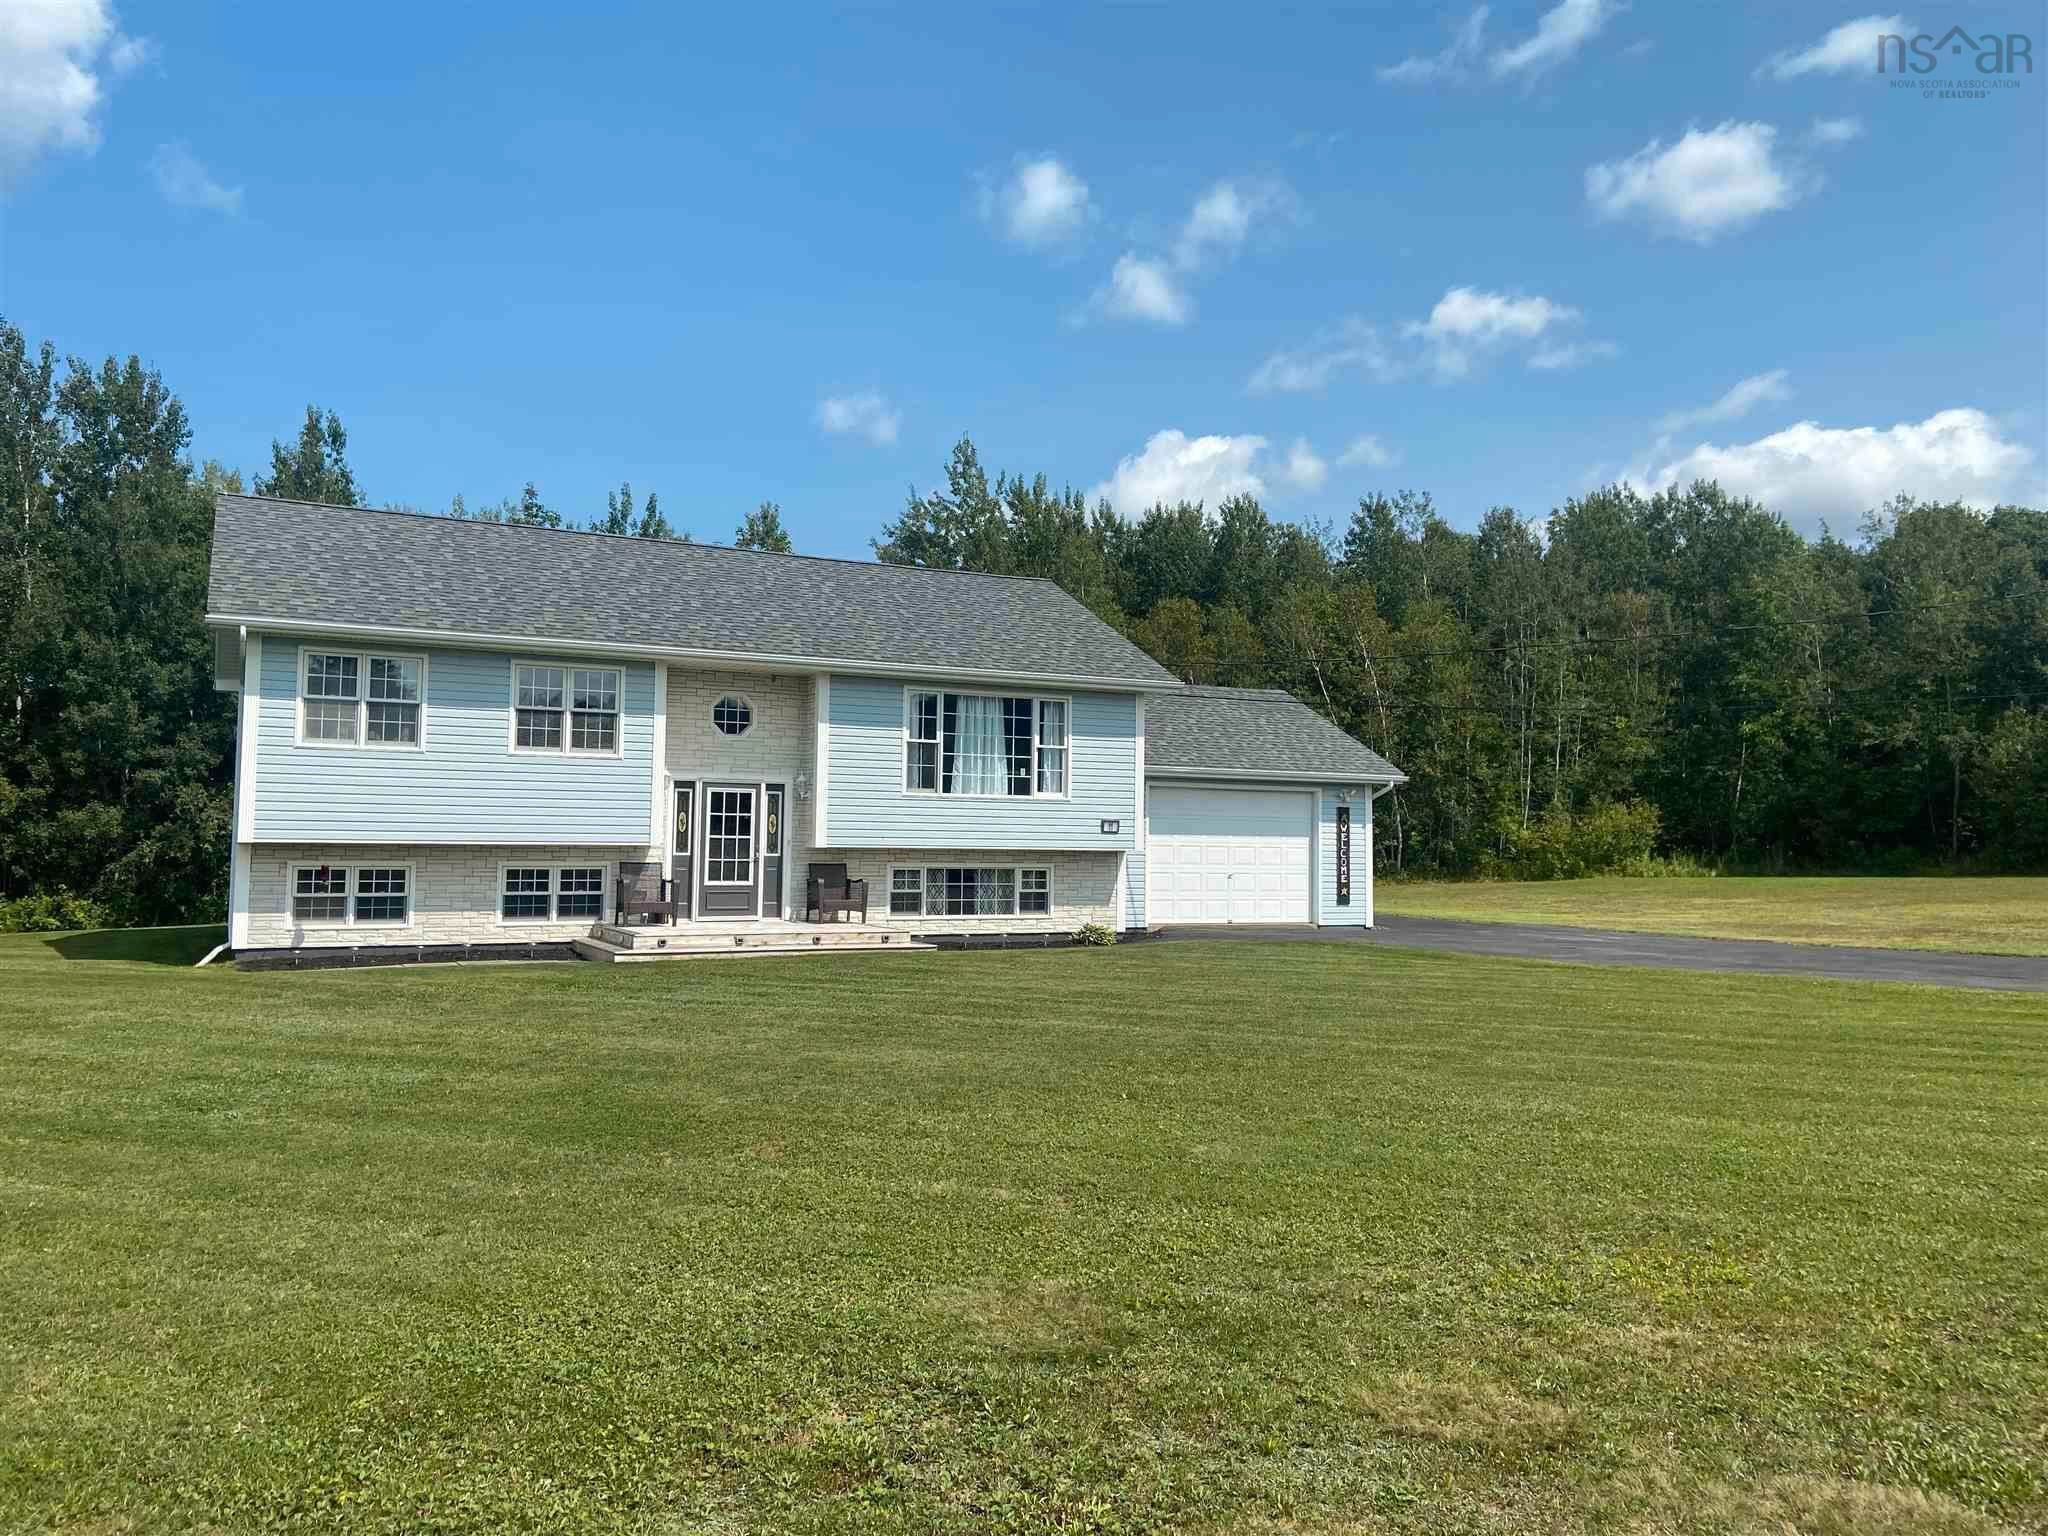 Main Photo: 11 Kyle Road in Mclellans Brook: 108-Rural Pictou County Residential for sale (Northern Region)  : MLS®# 202121989